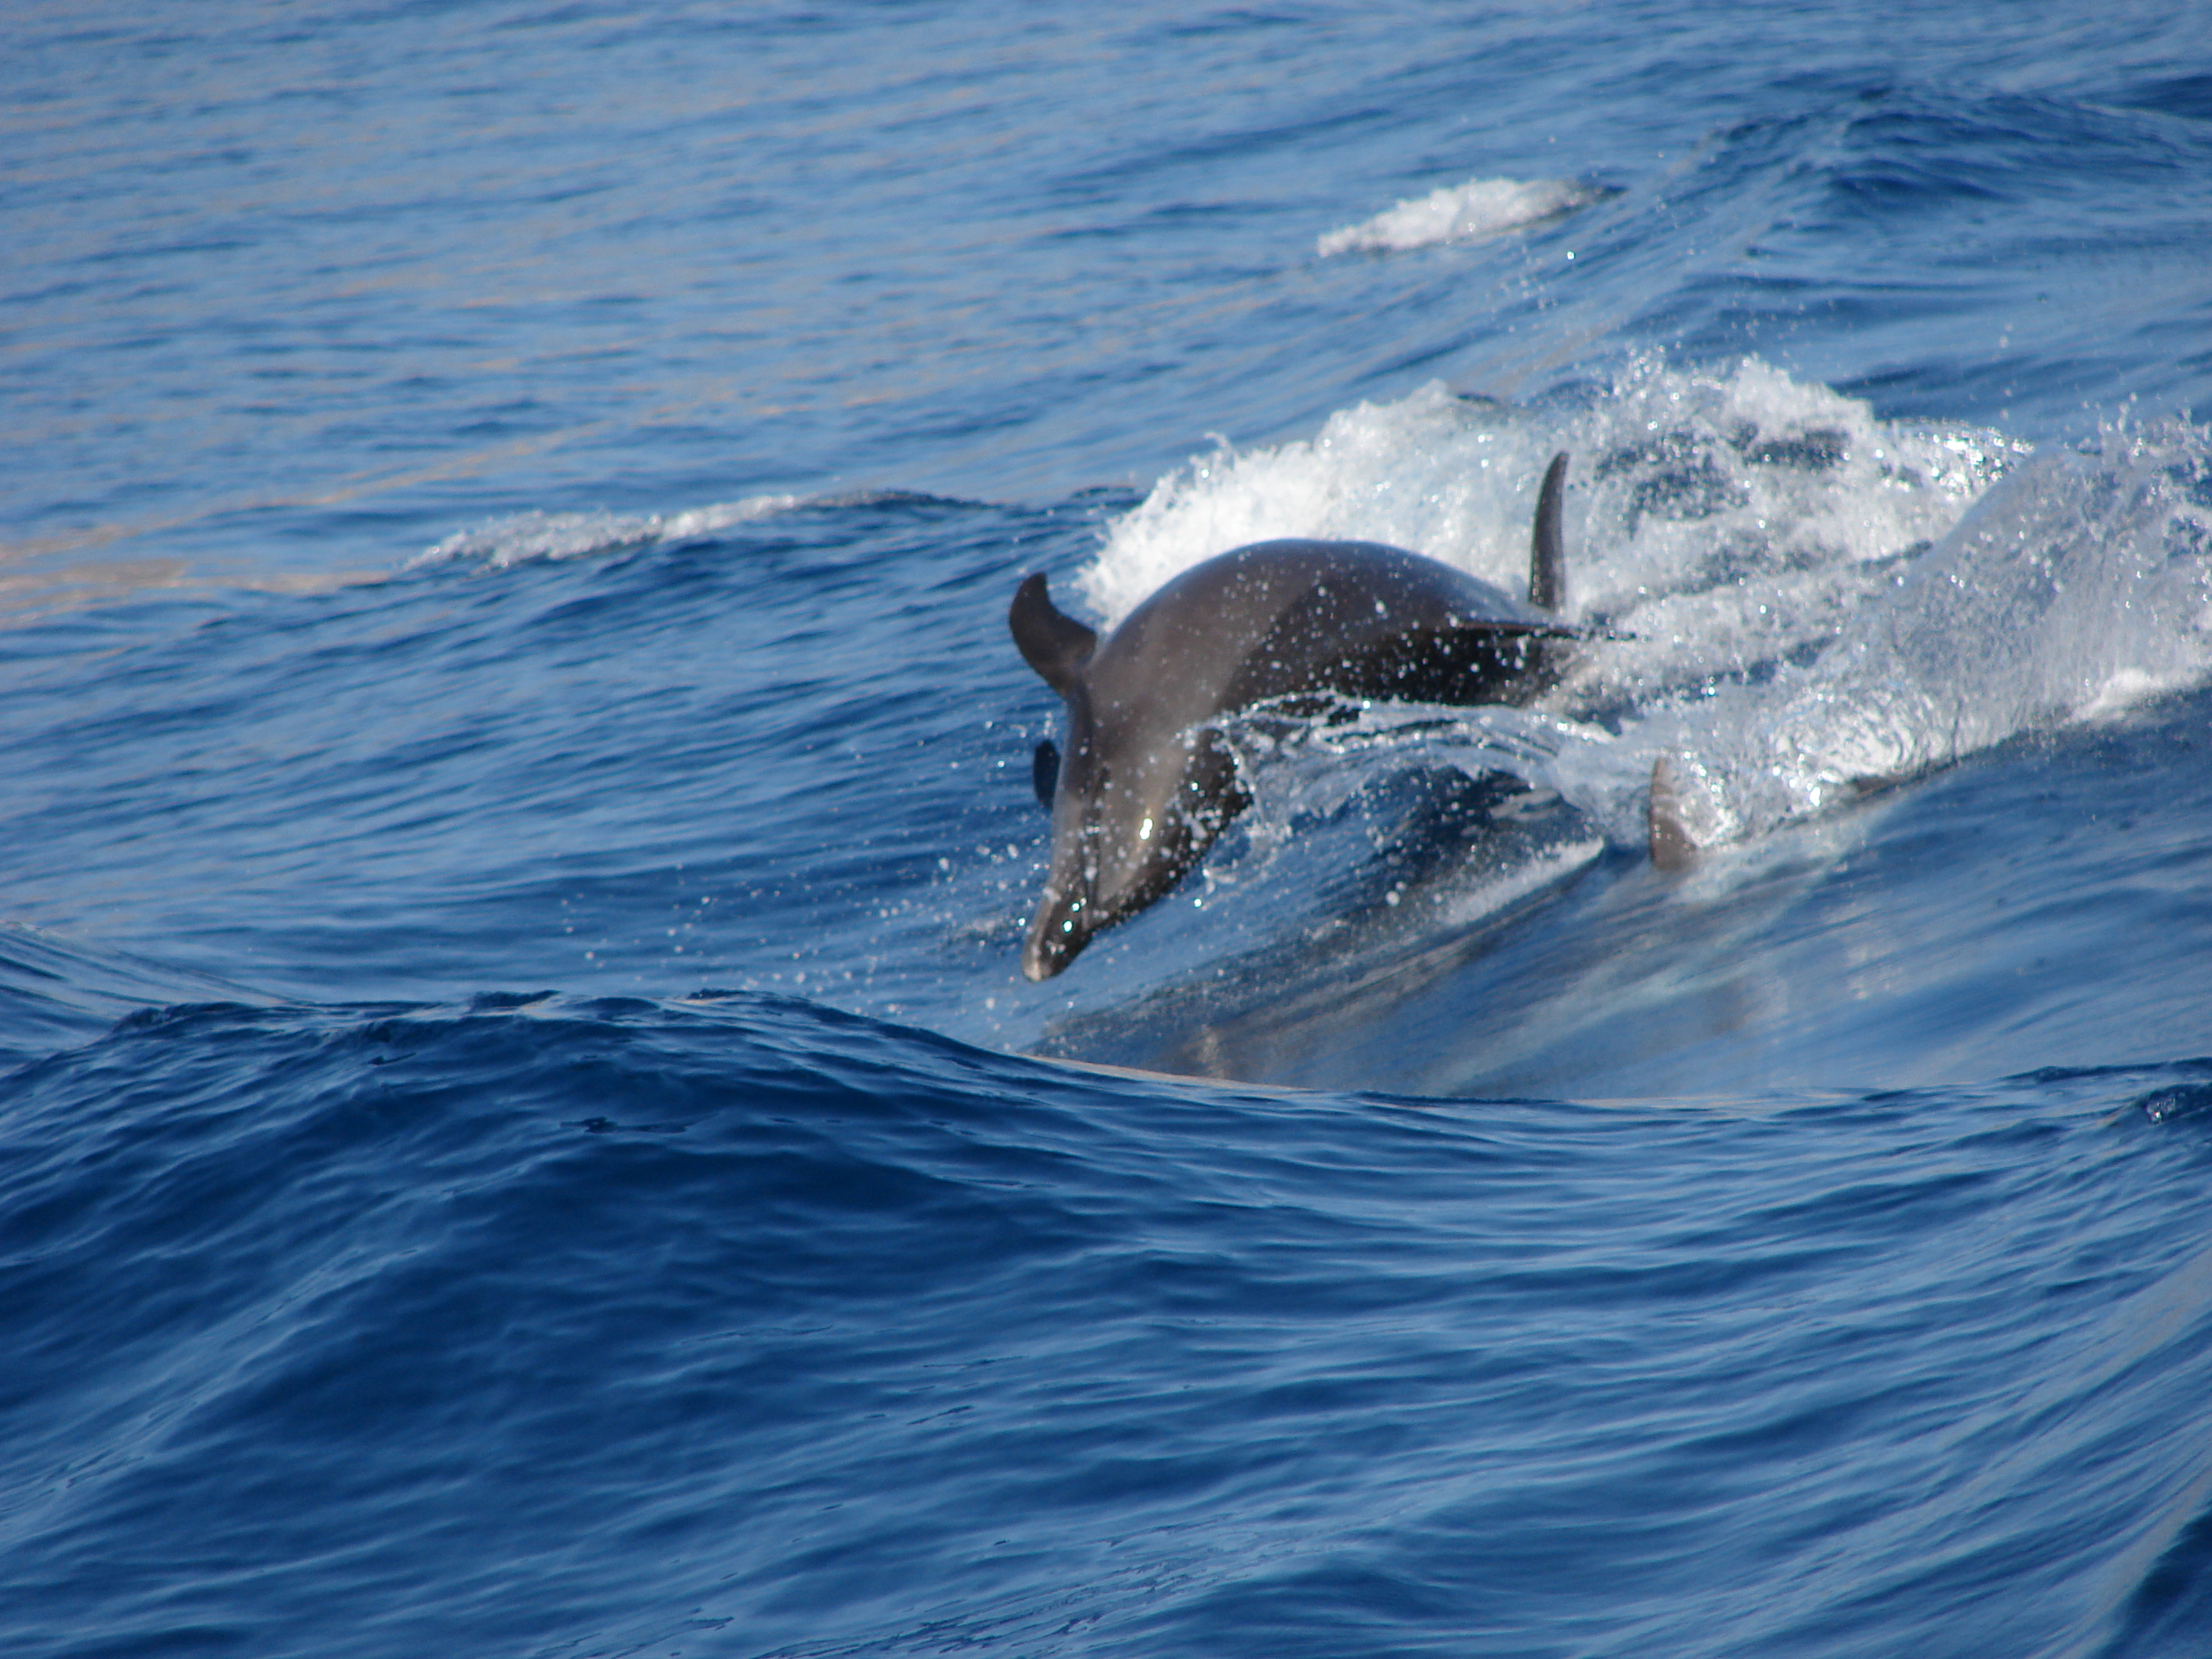 Dolfins following the boat,off tenerife coast